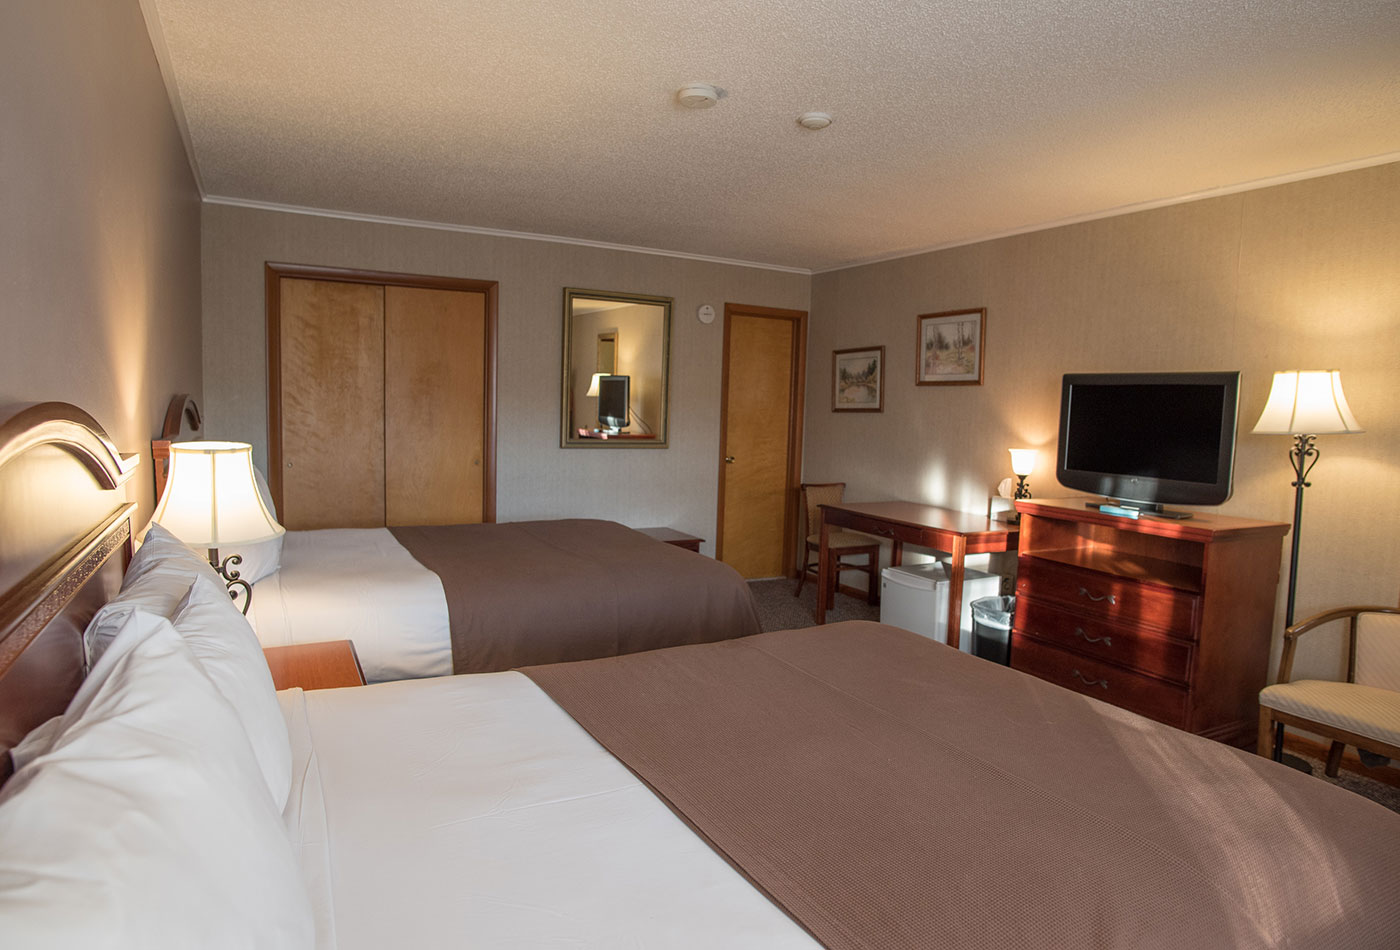 Double Queen Guest Room with Indoor Pool at Dunham's Bay Resort in Lake George